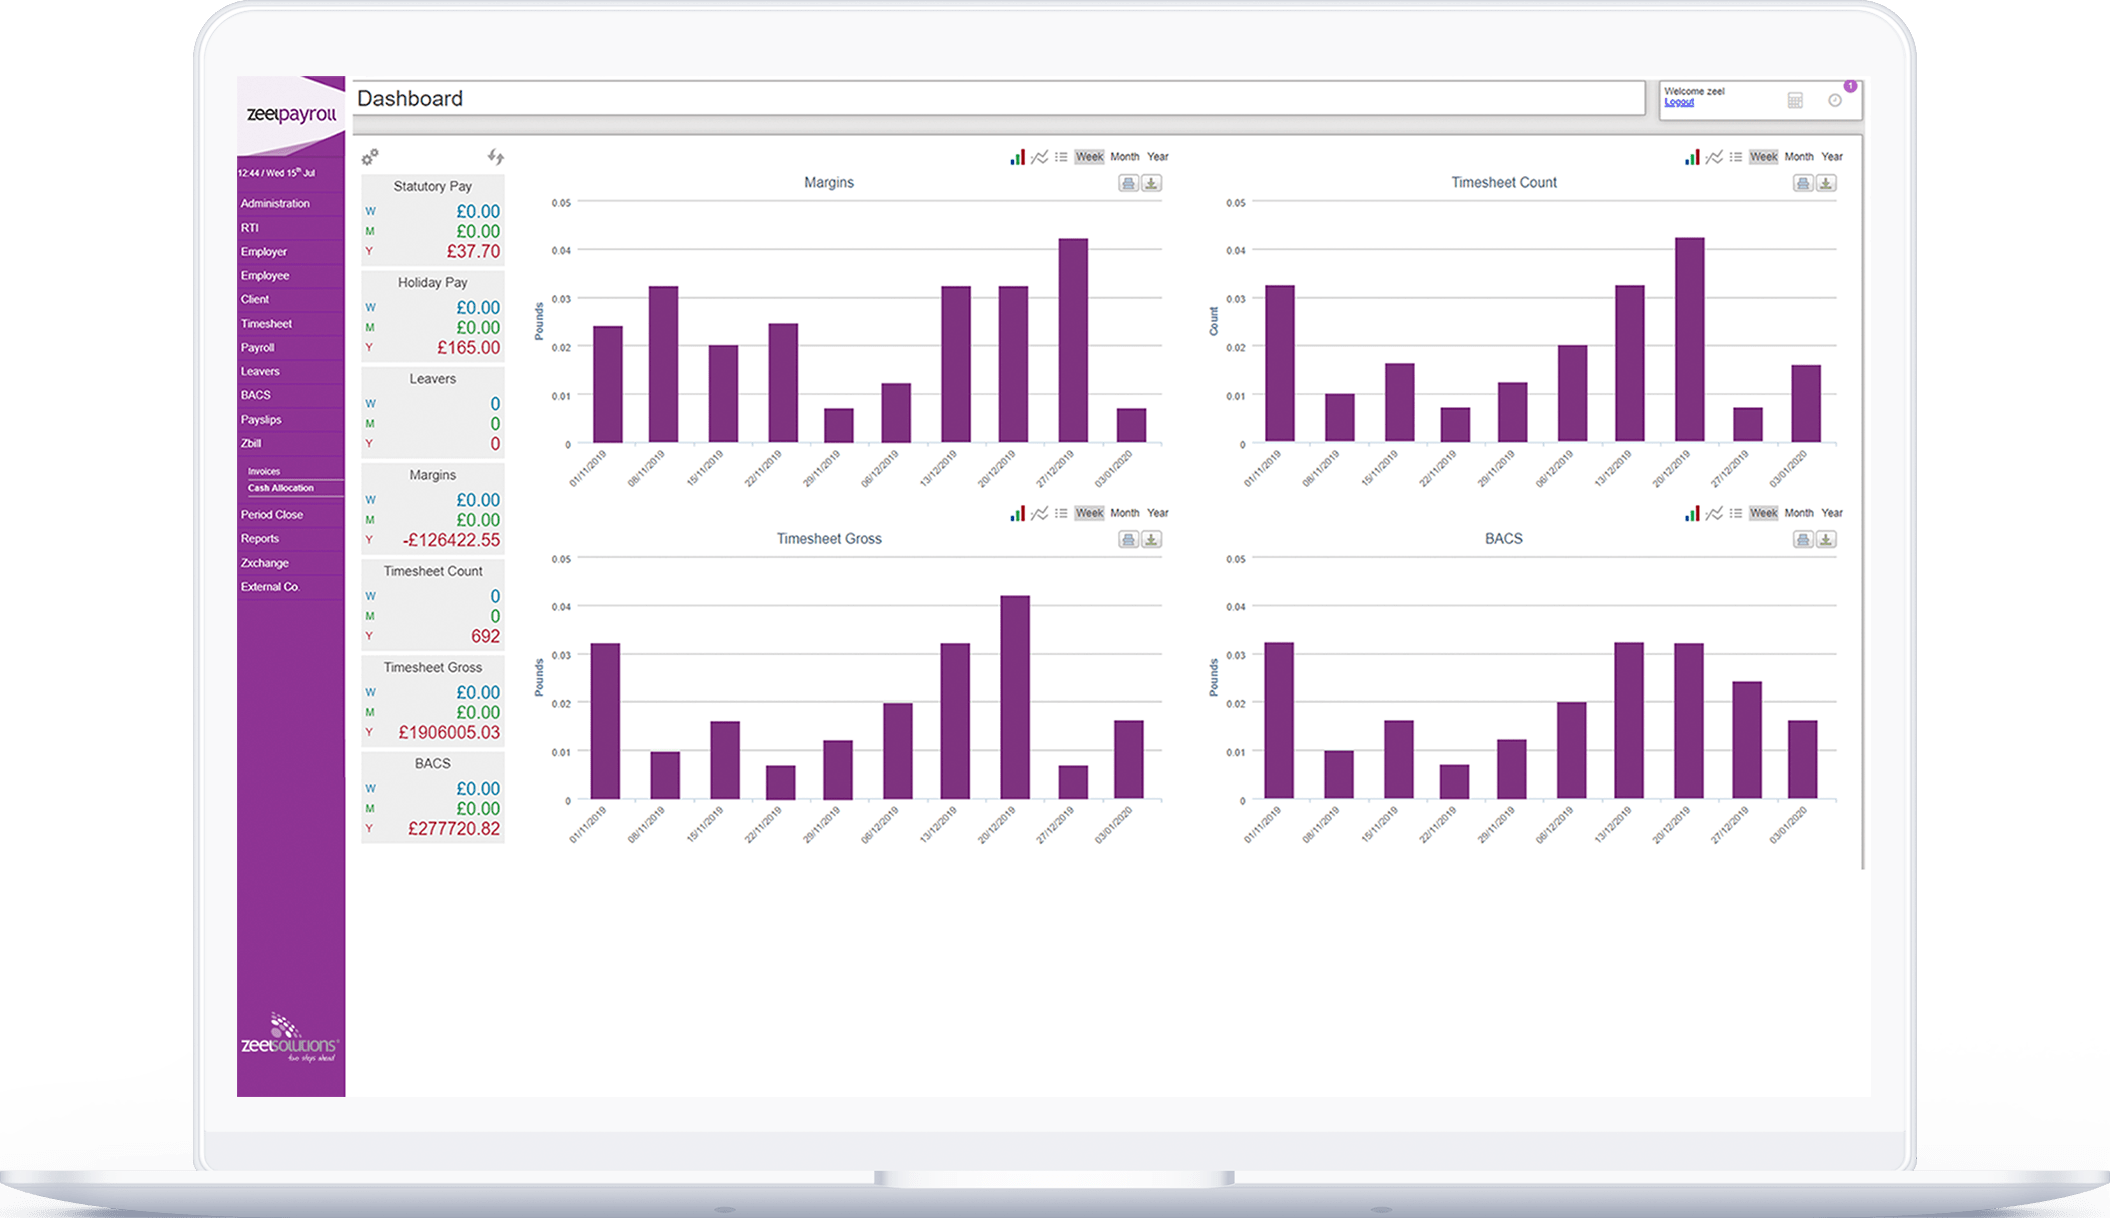 Dashboard view of Payroll system